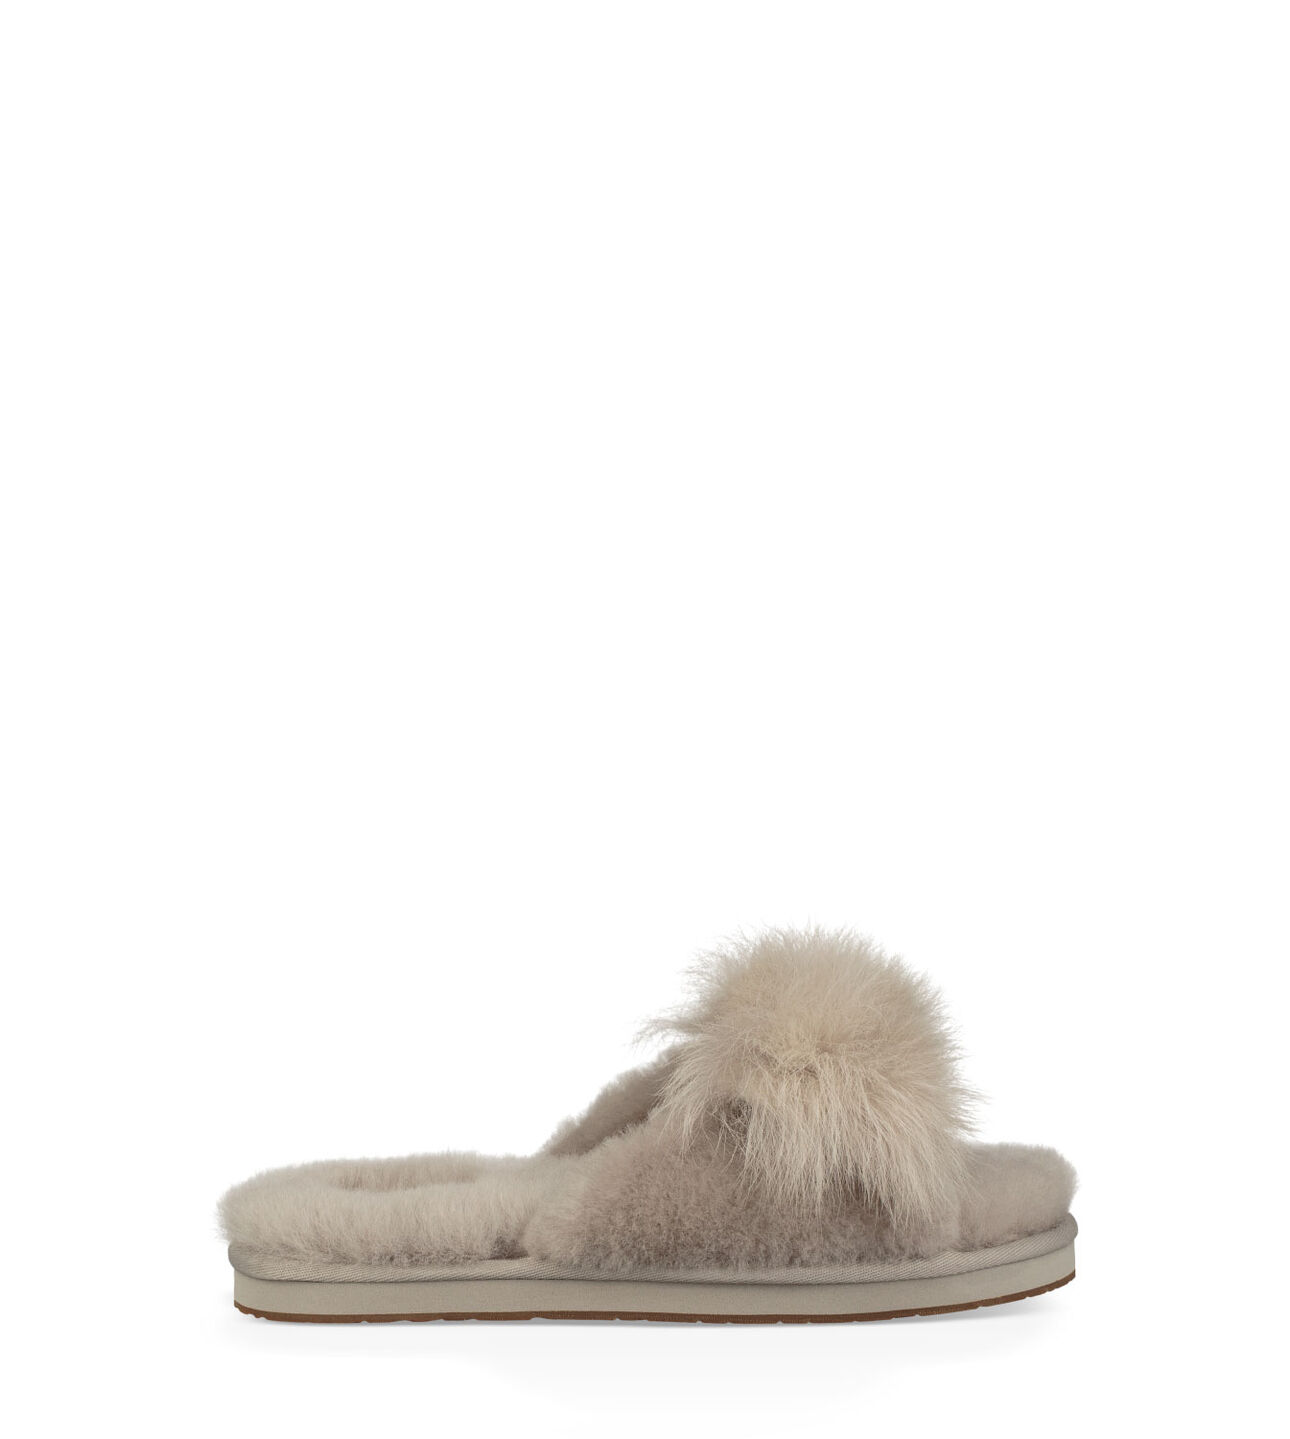 89f31b3eac Share this product. Mirabelle Slipper. UGG